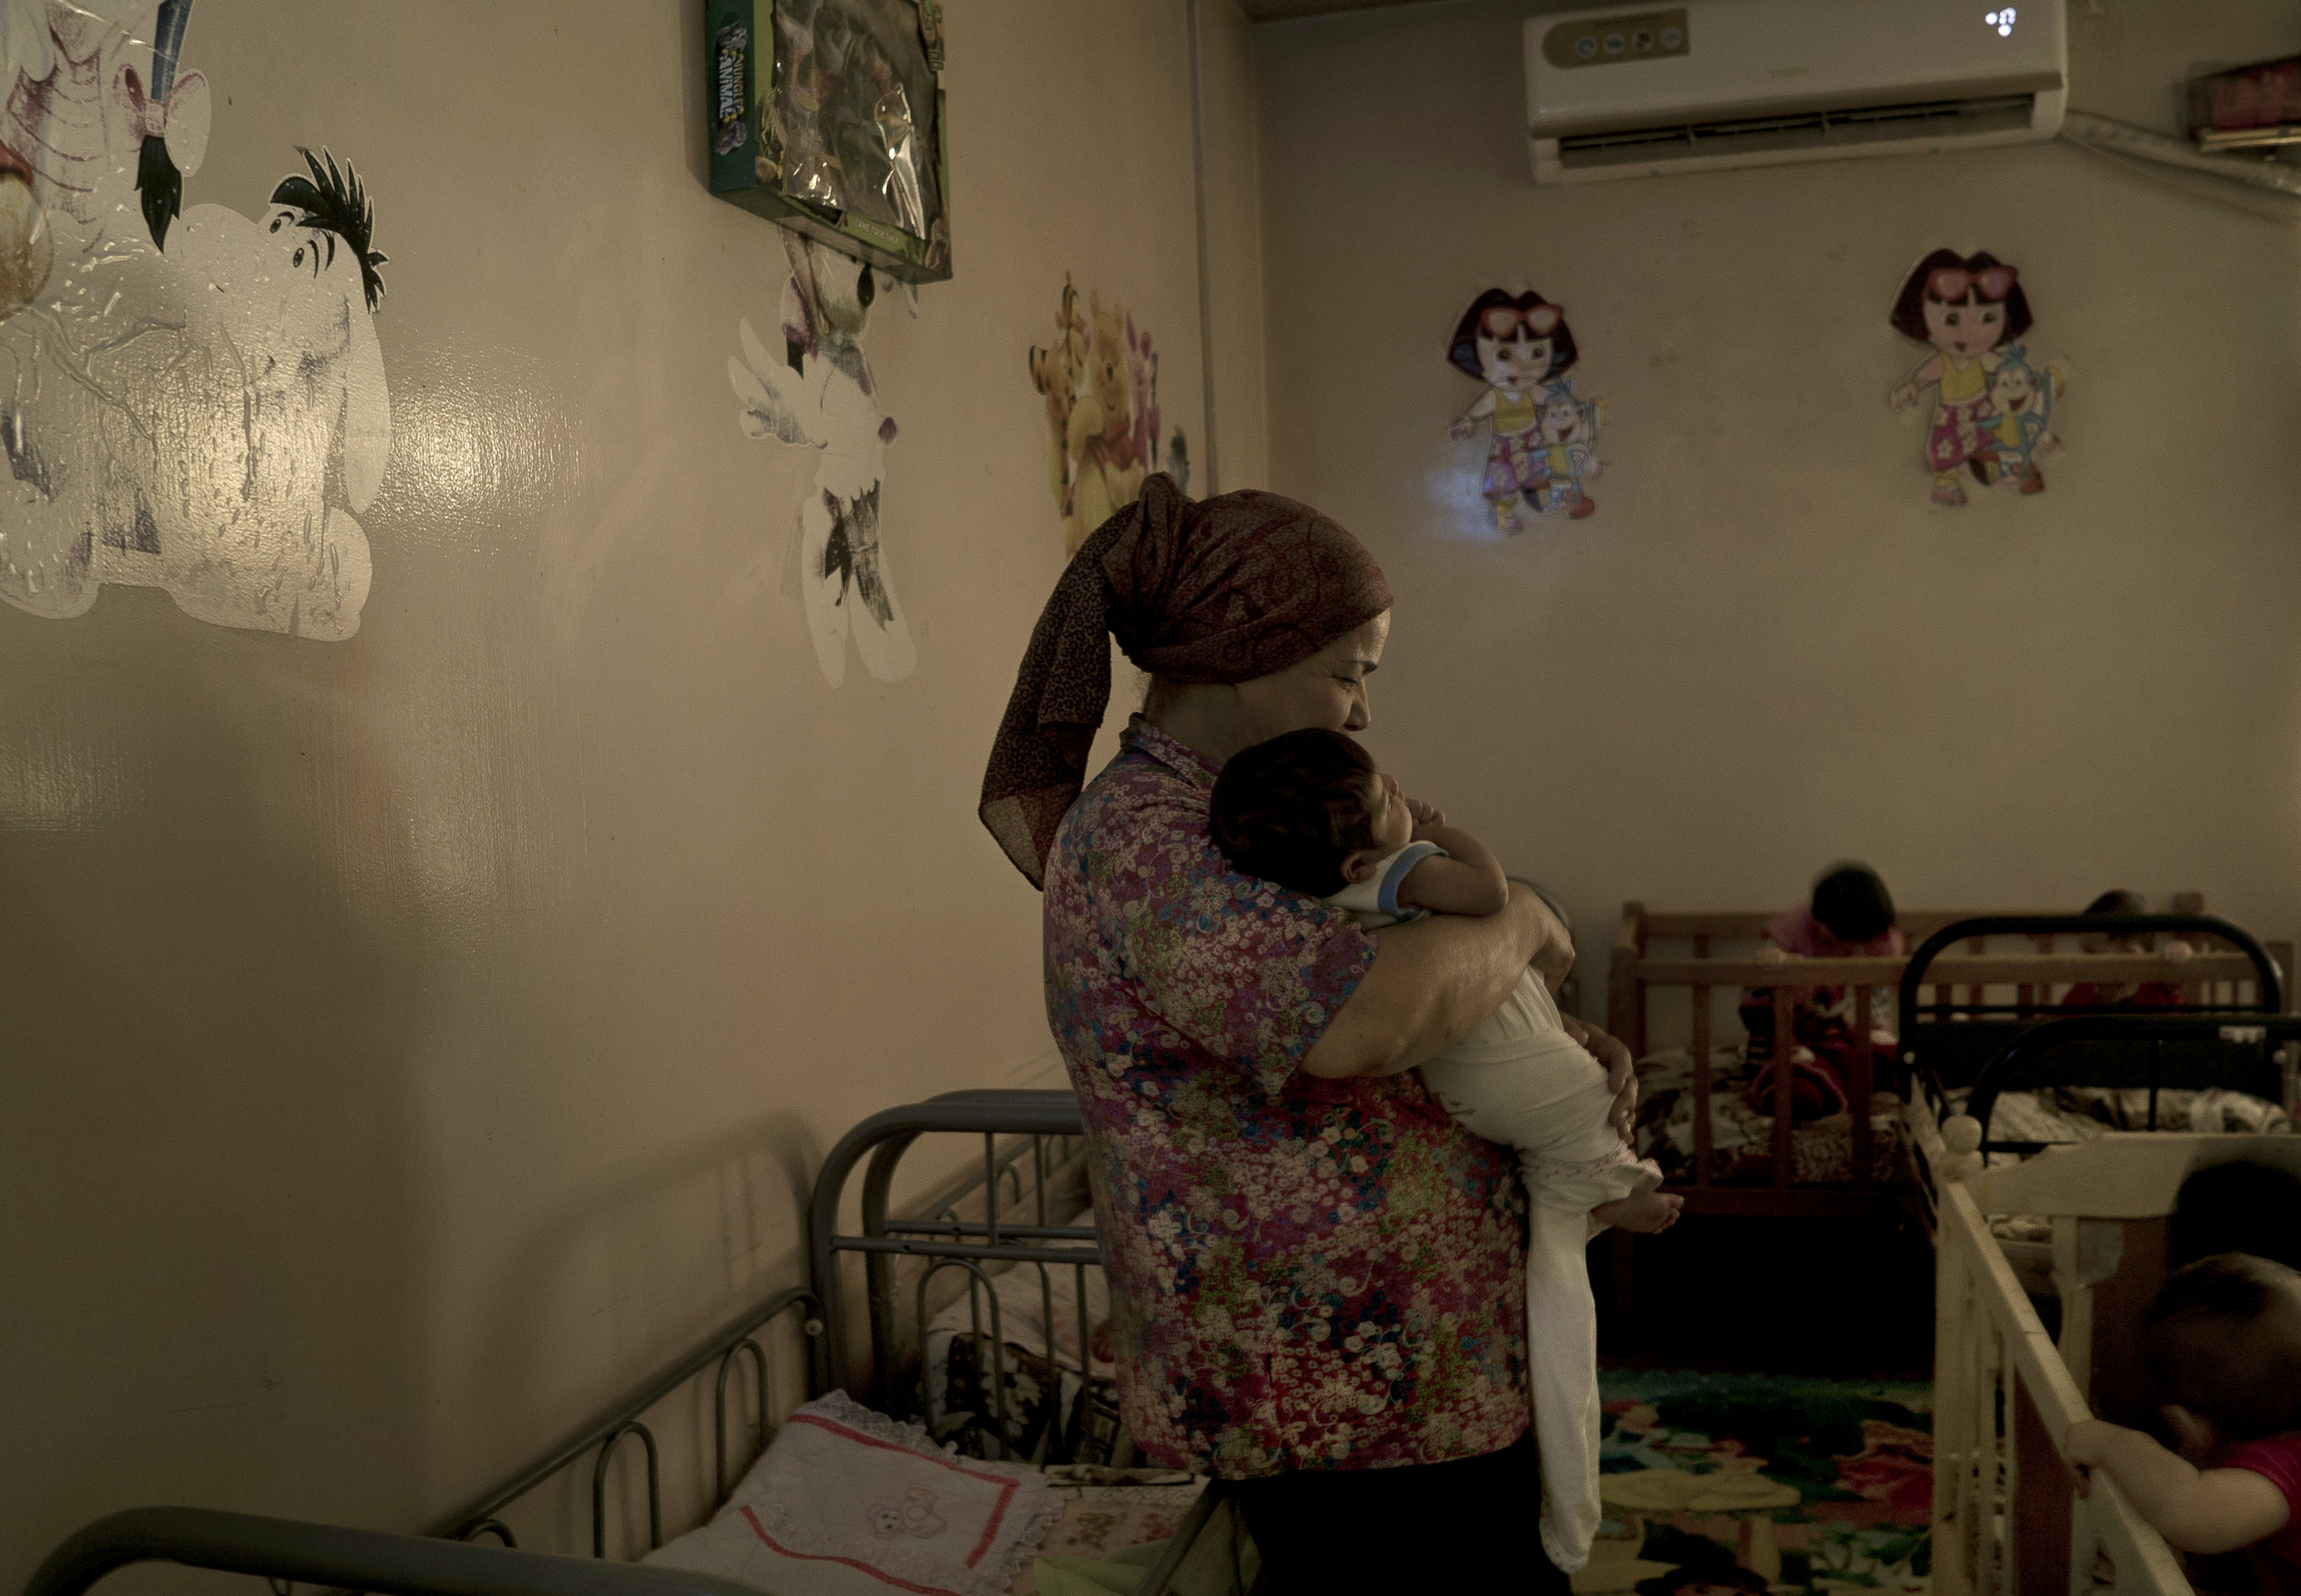 A caretaker cuddles a baby girl named Helen at Salhiya orphanage. Helen was abandoned at the hospital after birth. (AP Photo/Maya Alleruzzo)